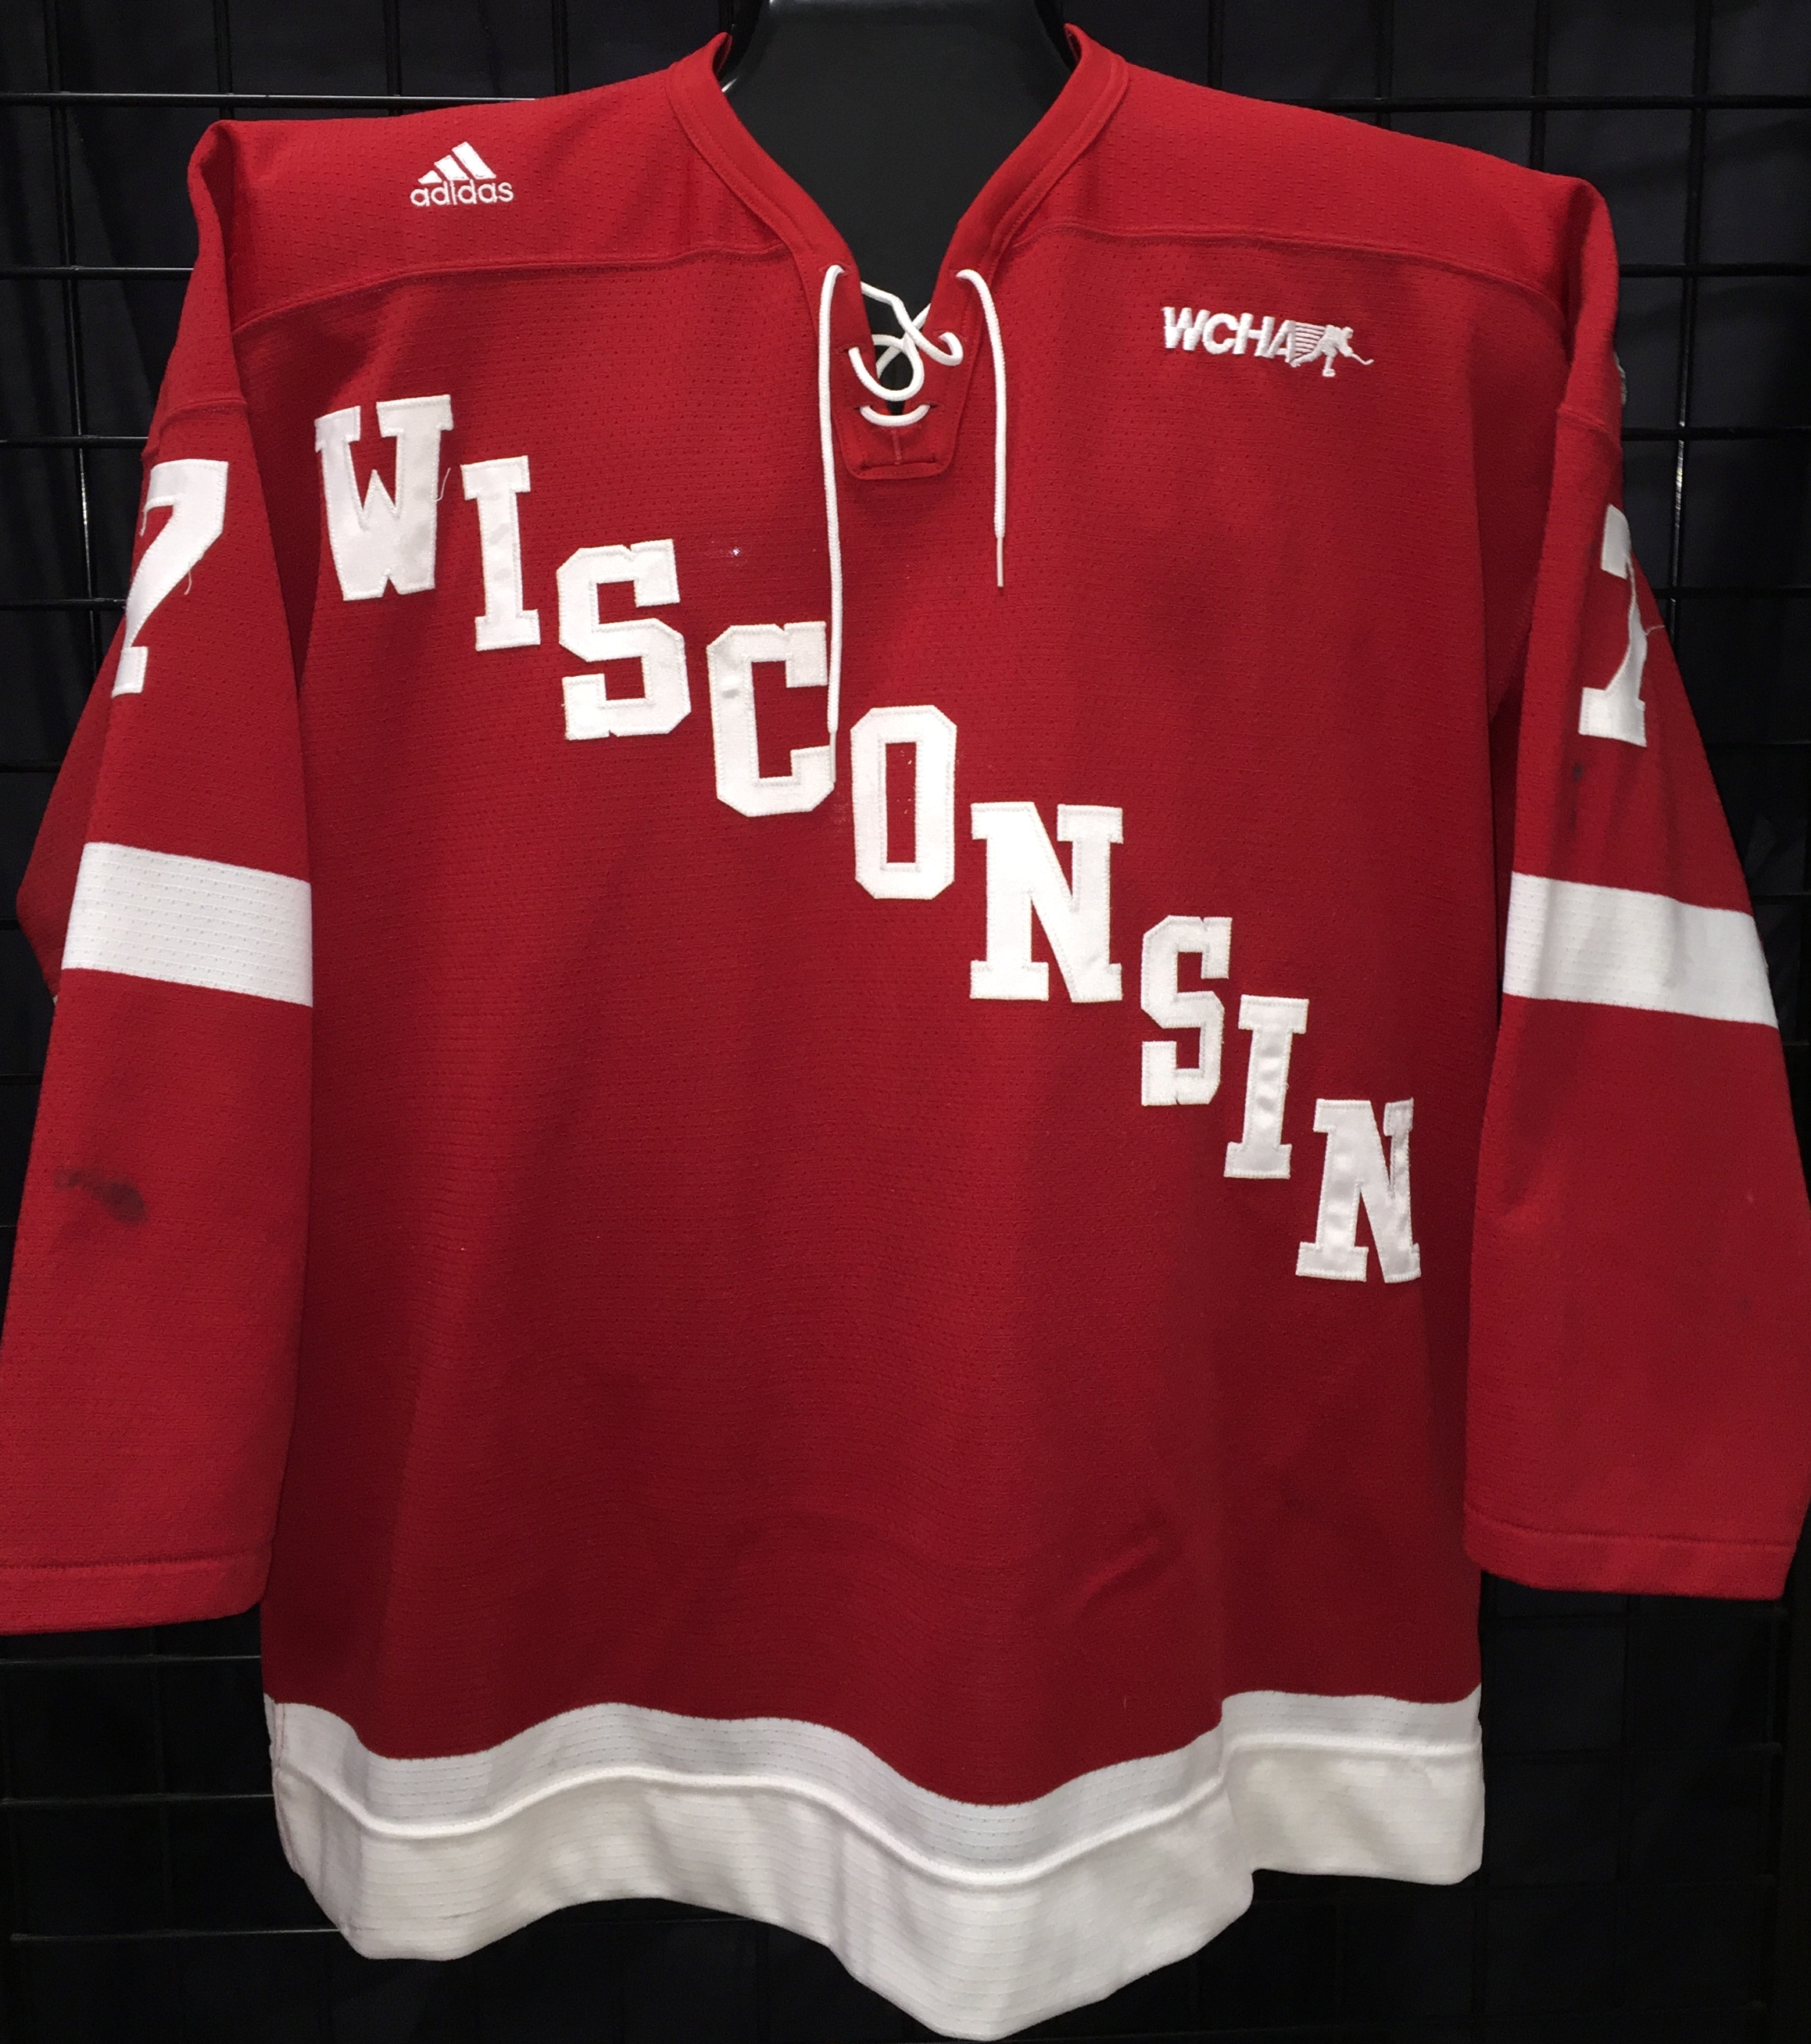 GVJerseys - Game Worn Hockey Jersey Collection - University of Wisconsin af55bc1a50c